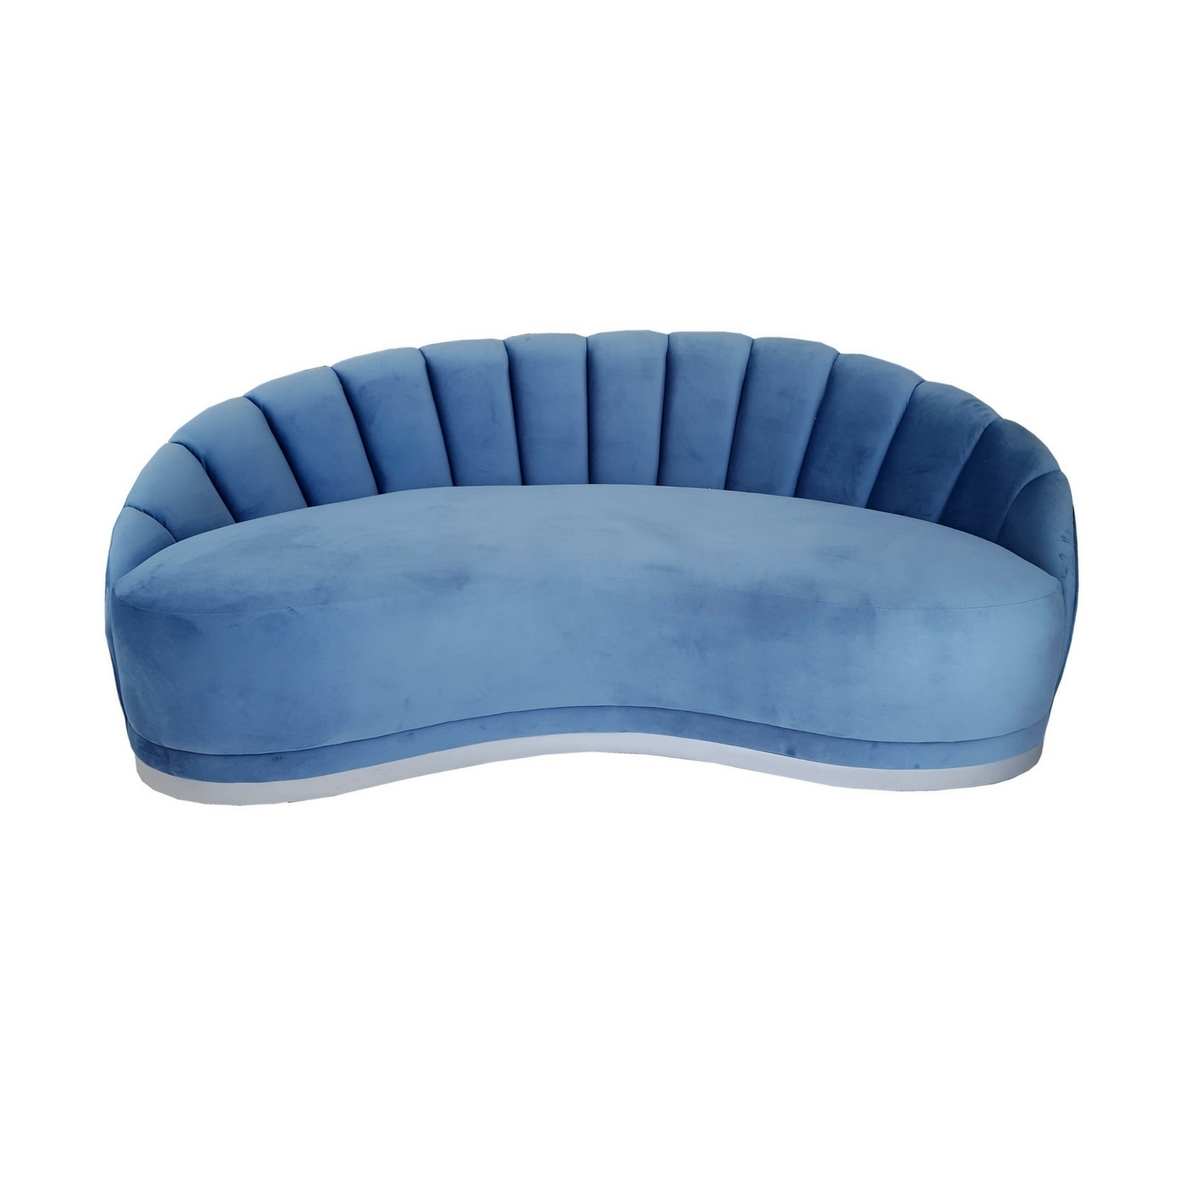 SL Blue sofa